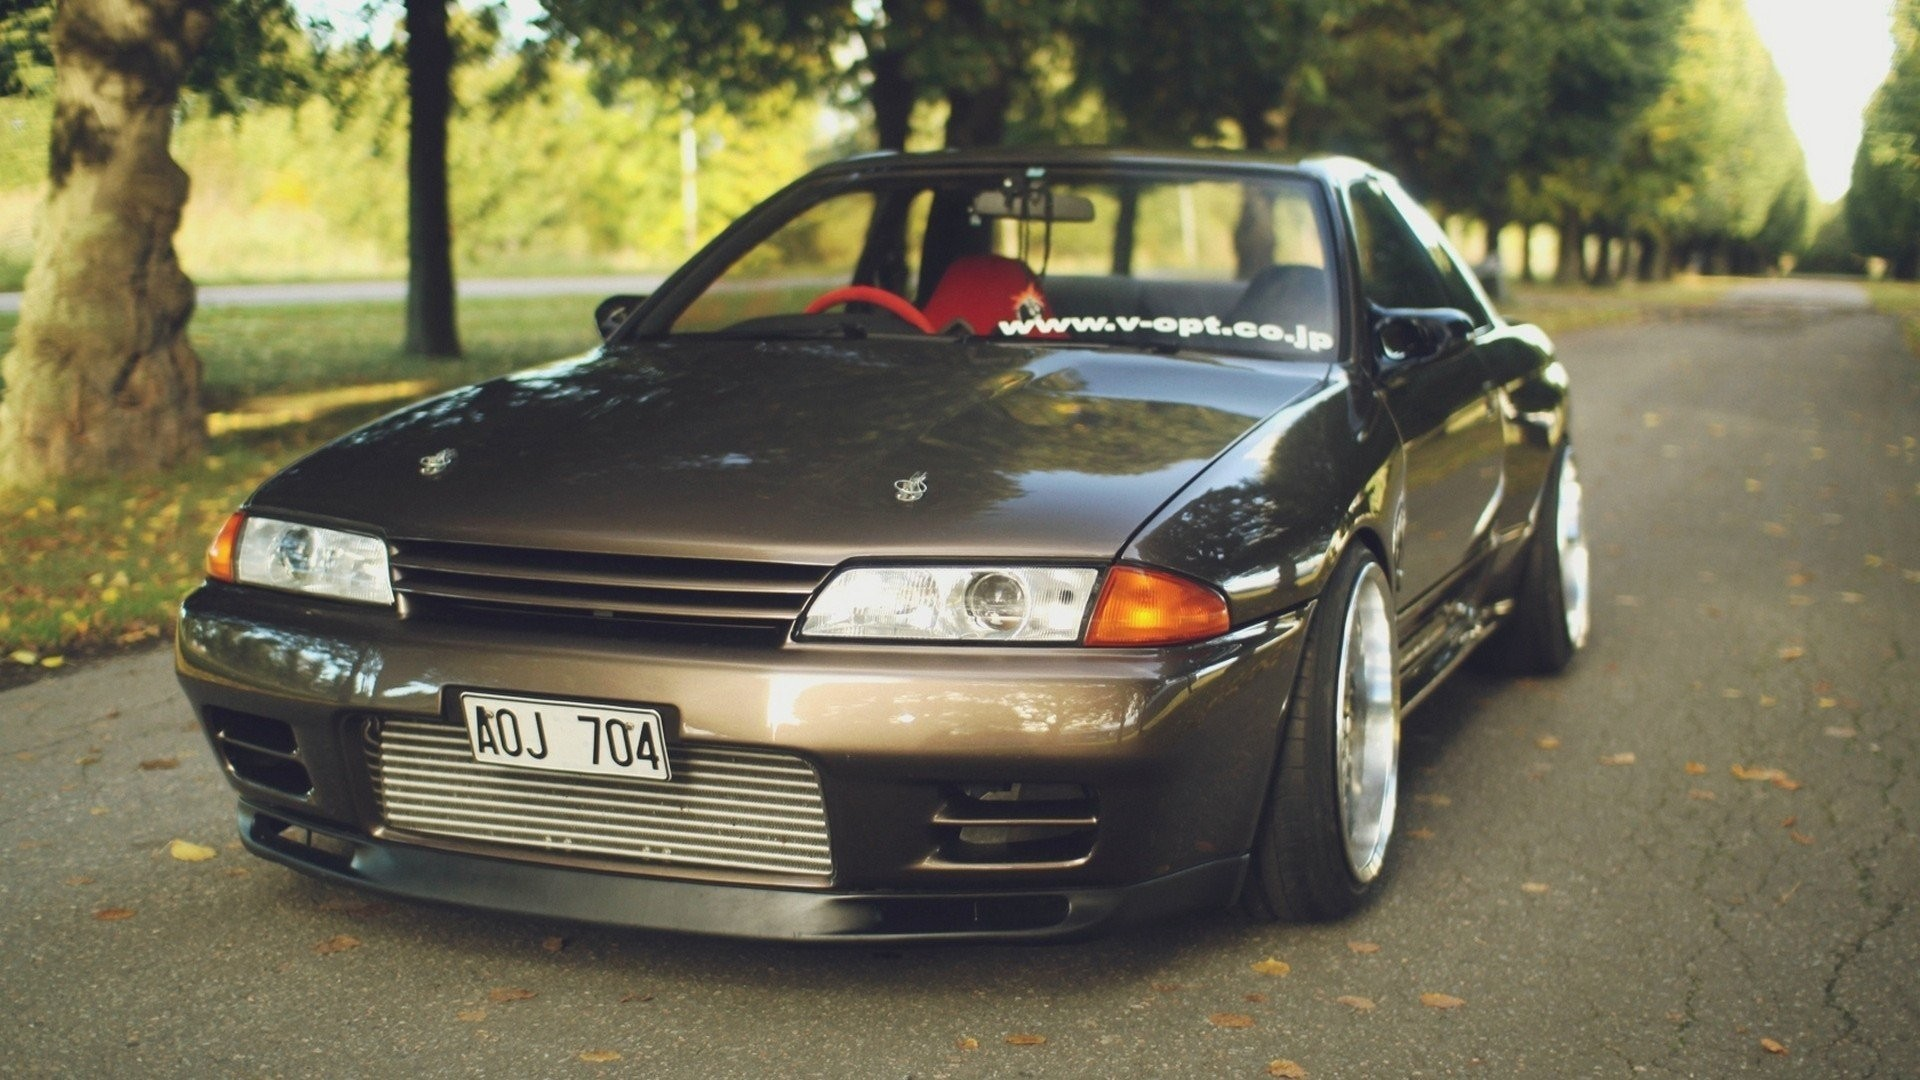 Cars roads tuning tuned Nissan Skyline R32 GT-R stance JDM Japanese  domestic market jdm wallpaper | | 237699 | WallpaperUP